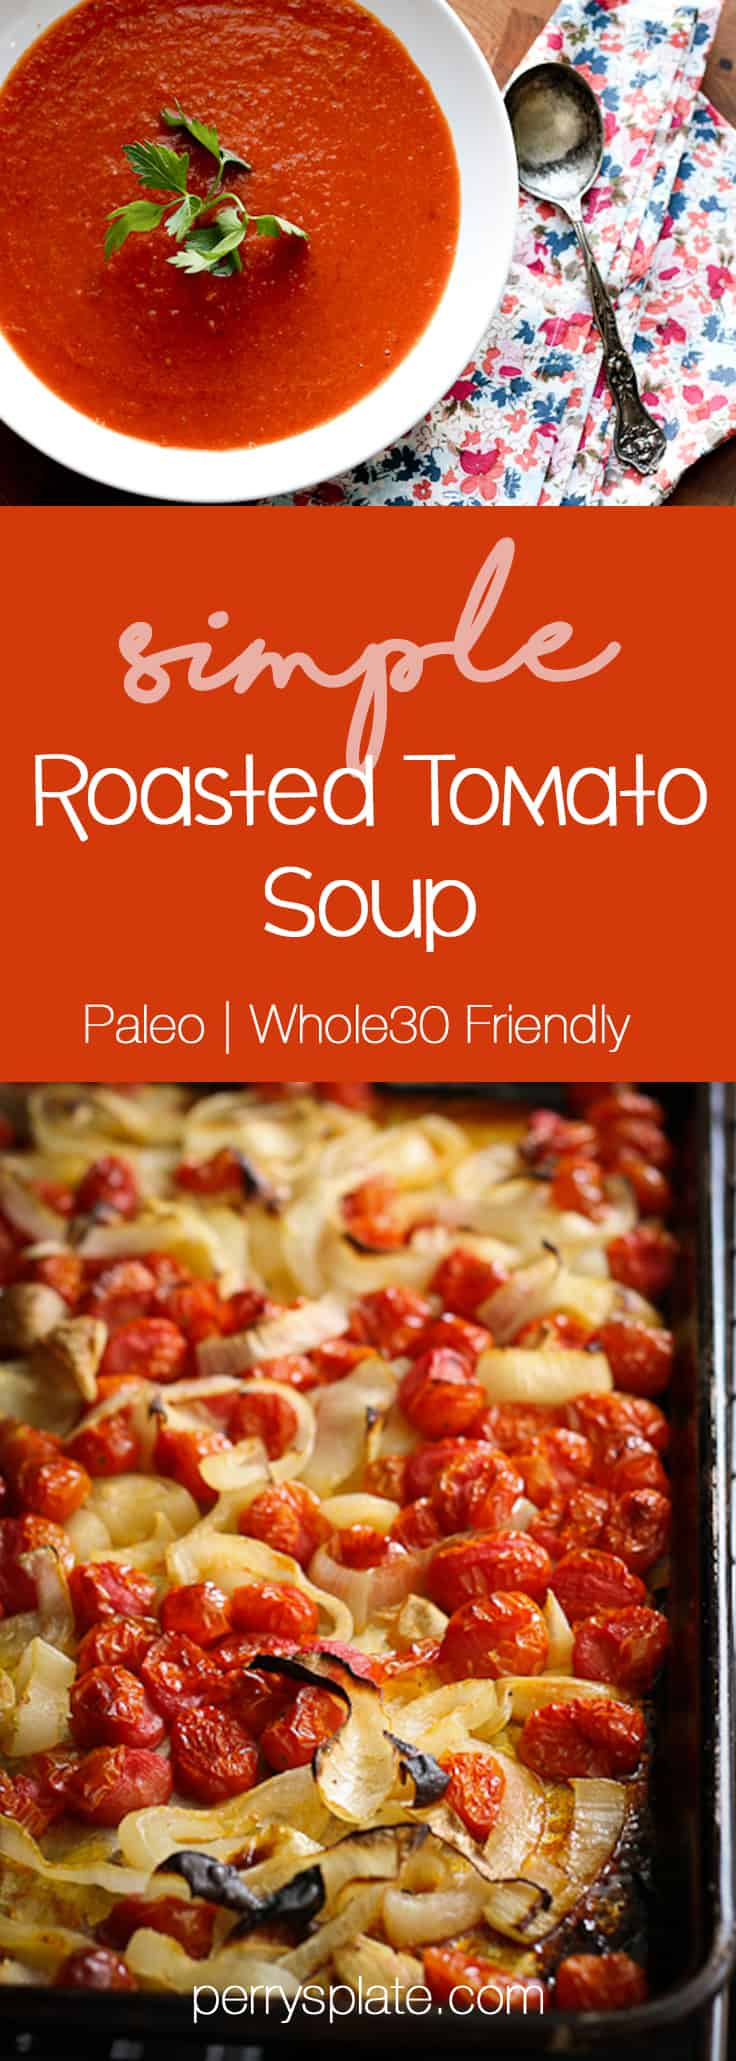 Simple Roasted Tomato Soup | Paleo recipes | Whole30 recipes | soup recipes | tomato recipes | perrysplate.com